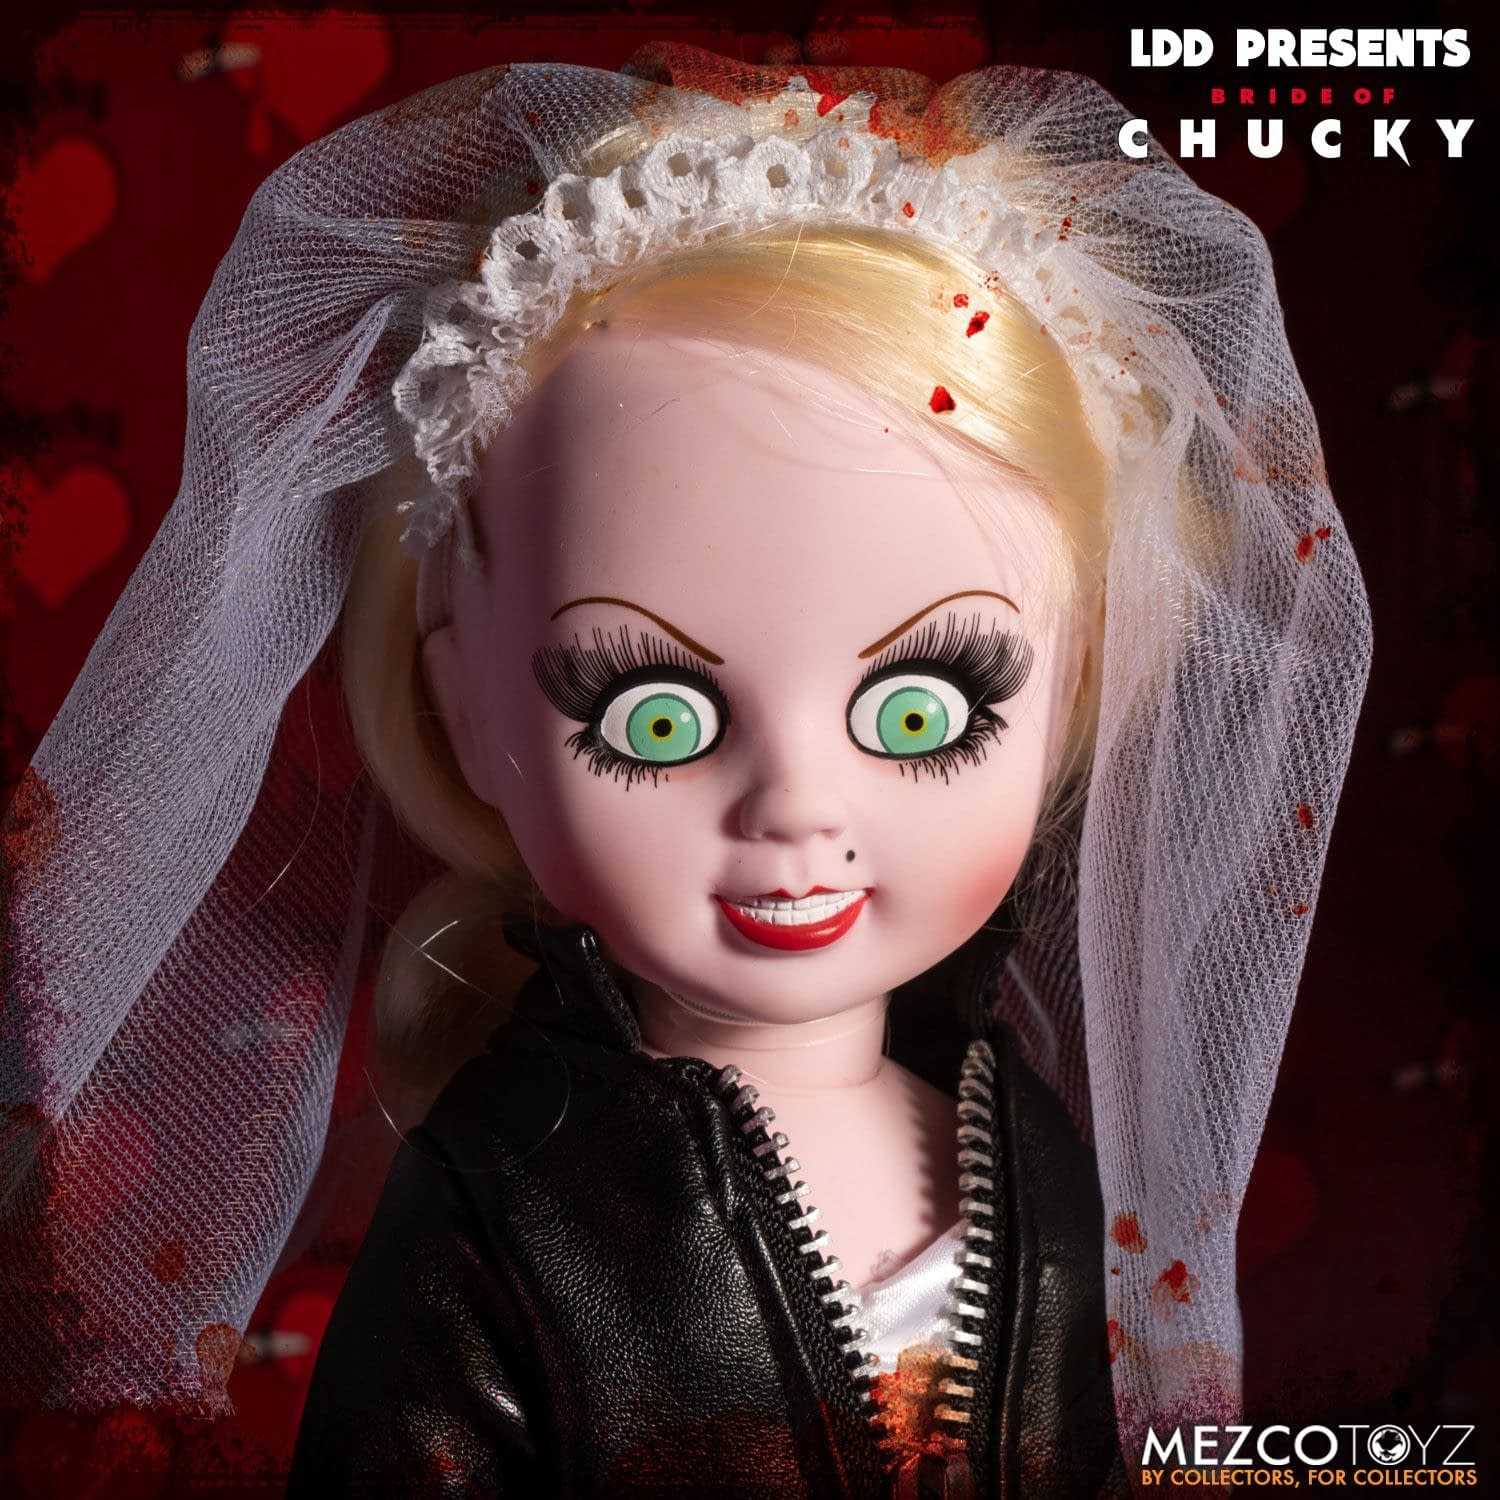 Chucky and Tiffany Show Their Love with new Mezco Dolls